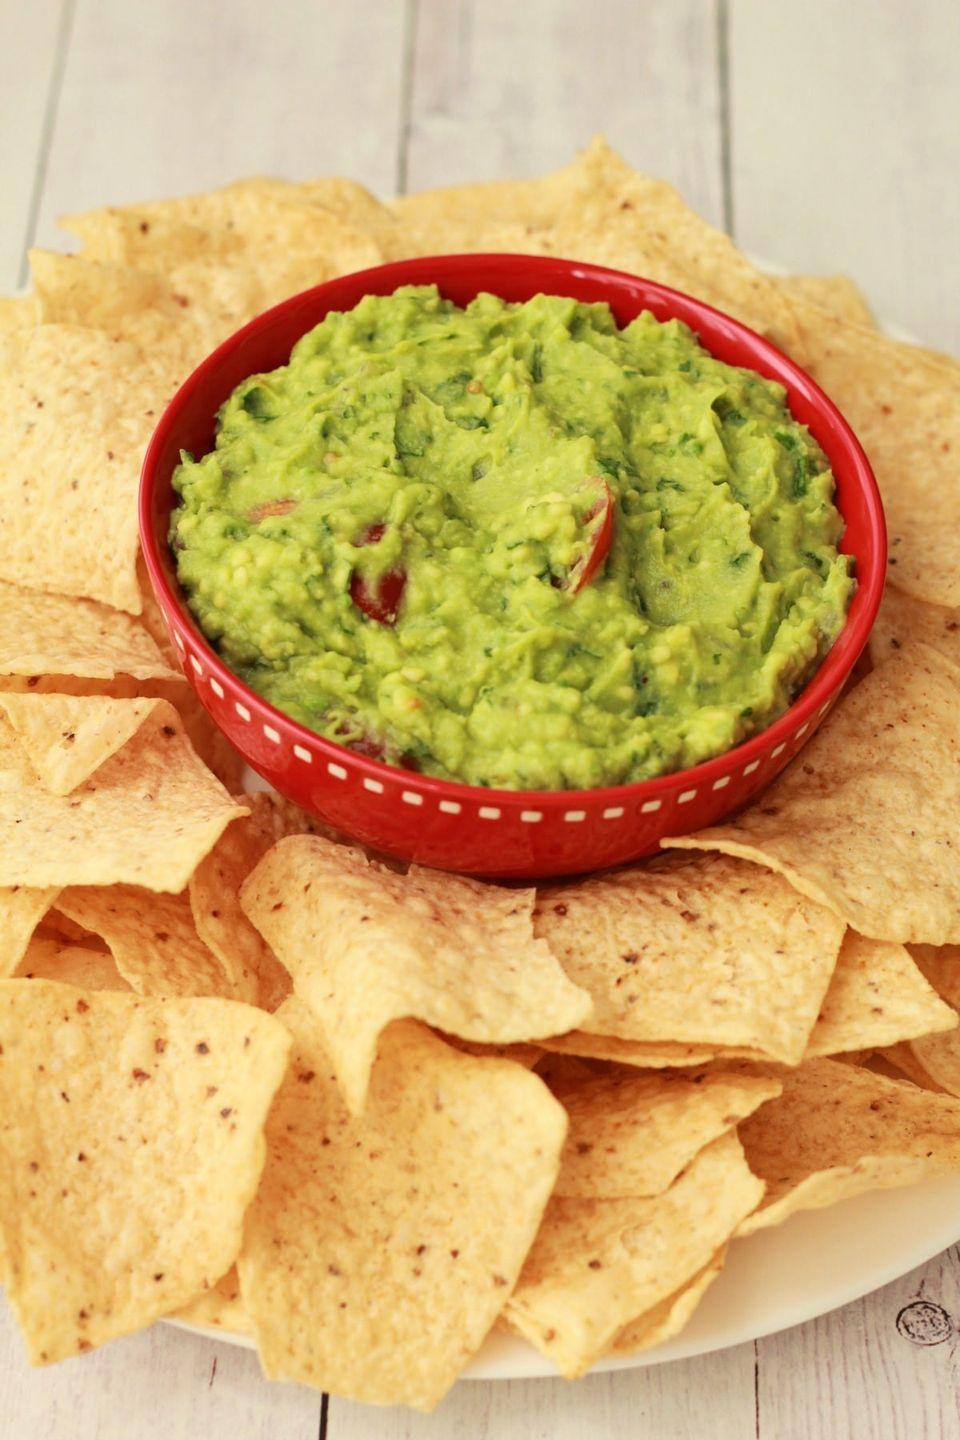 "<p>Set out a (big) bowl of this creamy, tangy, fresh dip as an appetizer while you work on the main dishes. We promise no one will mind if dinner's a little late. </p><p><a href=""https://lovingitvegan.com/simple-guacamole-recipe/"" rel=""nofollow noopener"" target=""_blank"" data-ylk=""slk:Get the recipe from Loving It Vegan »"" class=""link rapid-noclick-resp""><em>Get the recipe from Loving It Vegan »</em></a></p>"